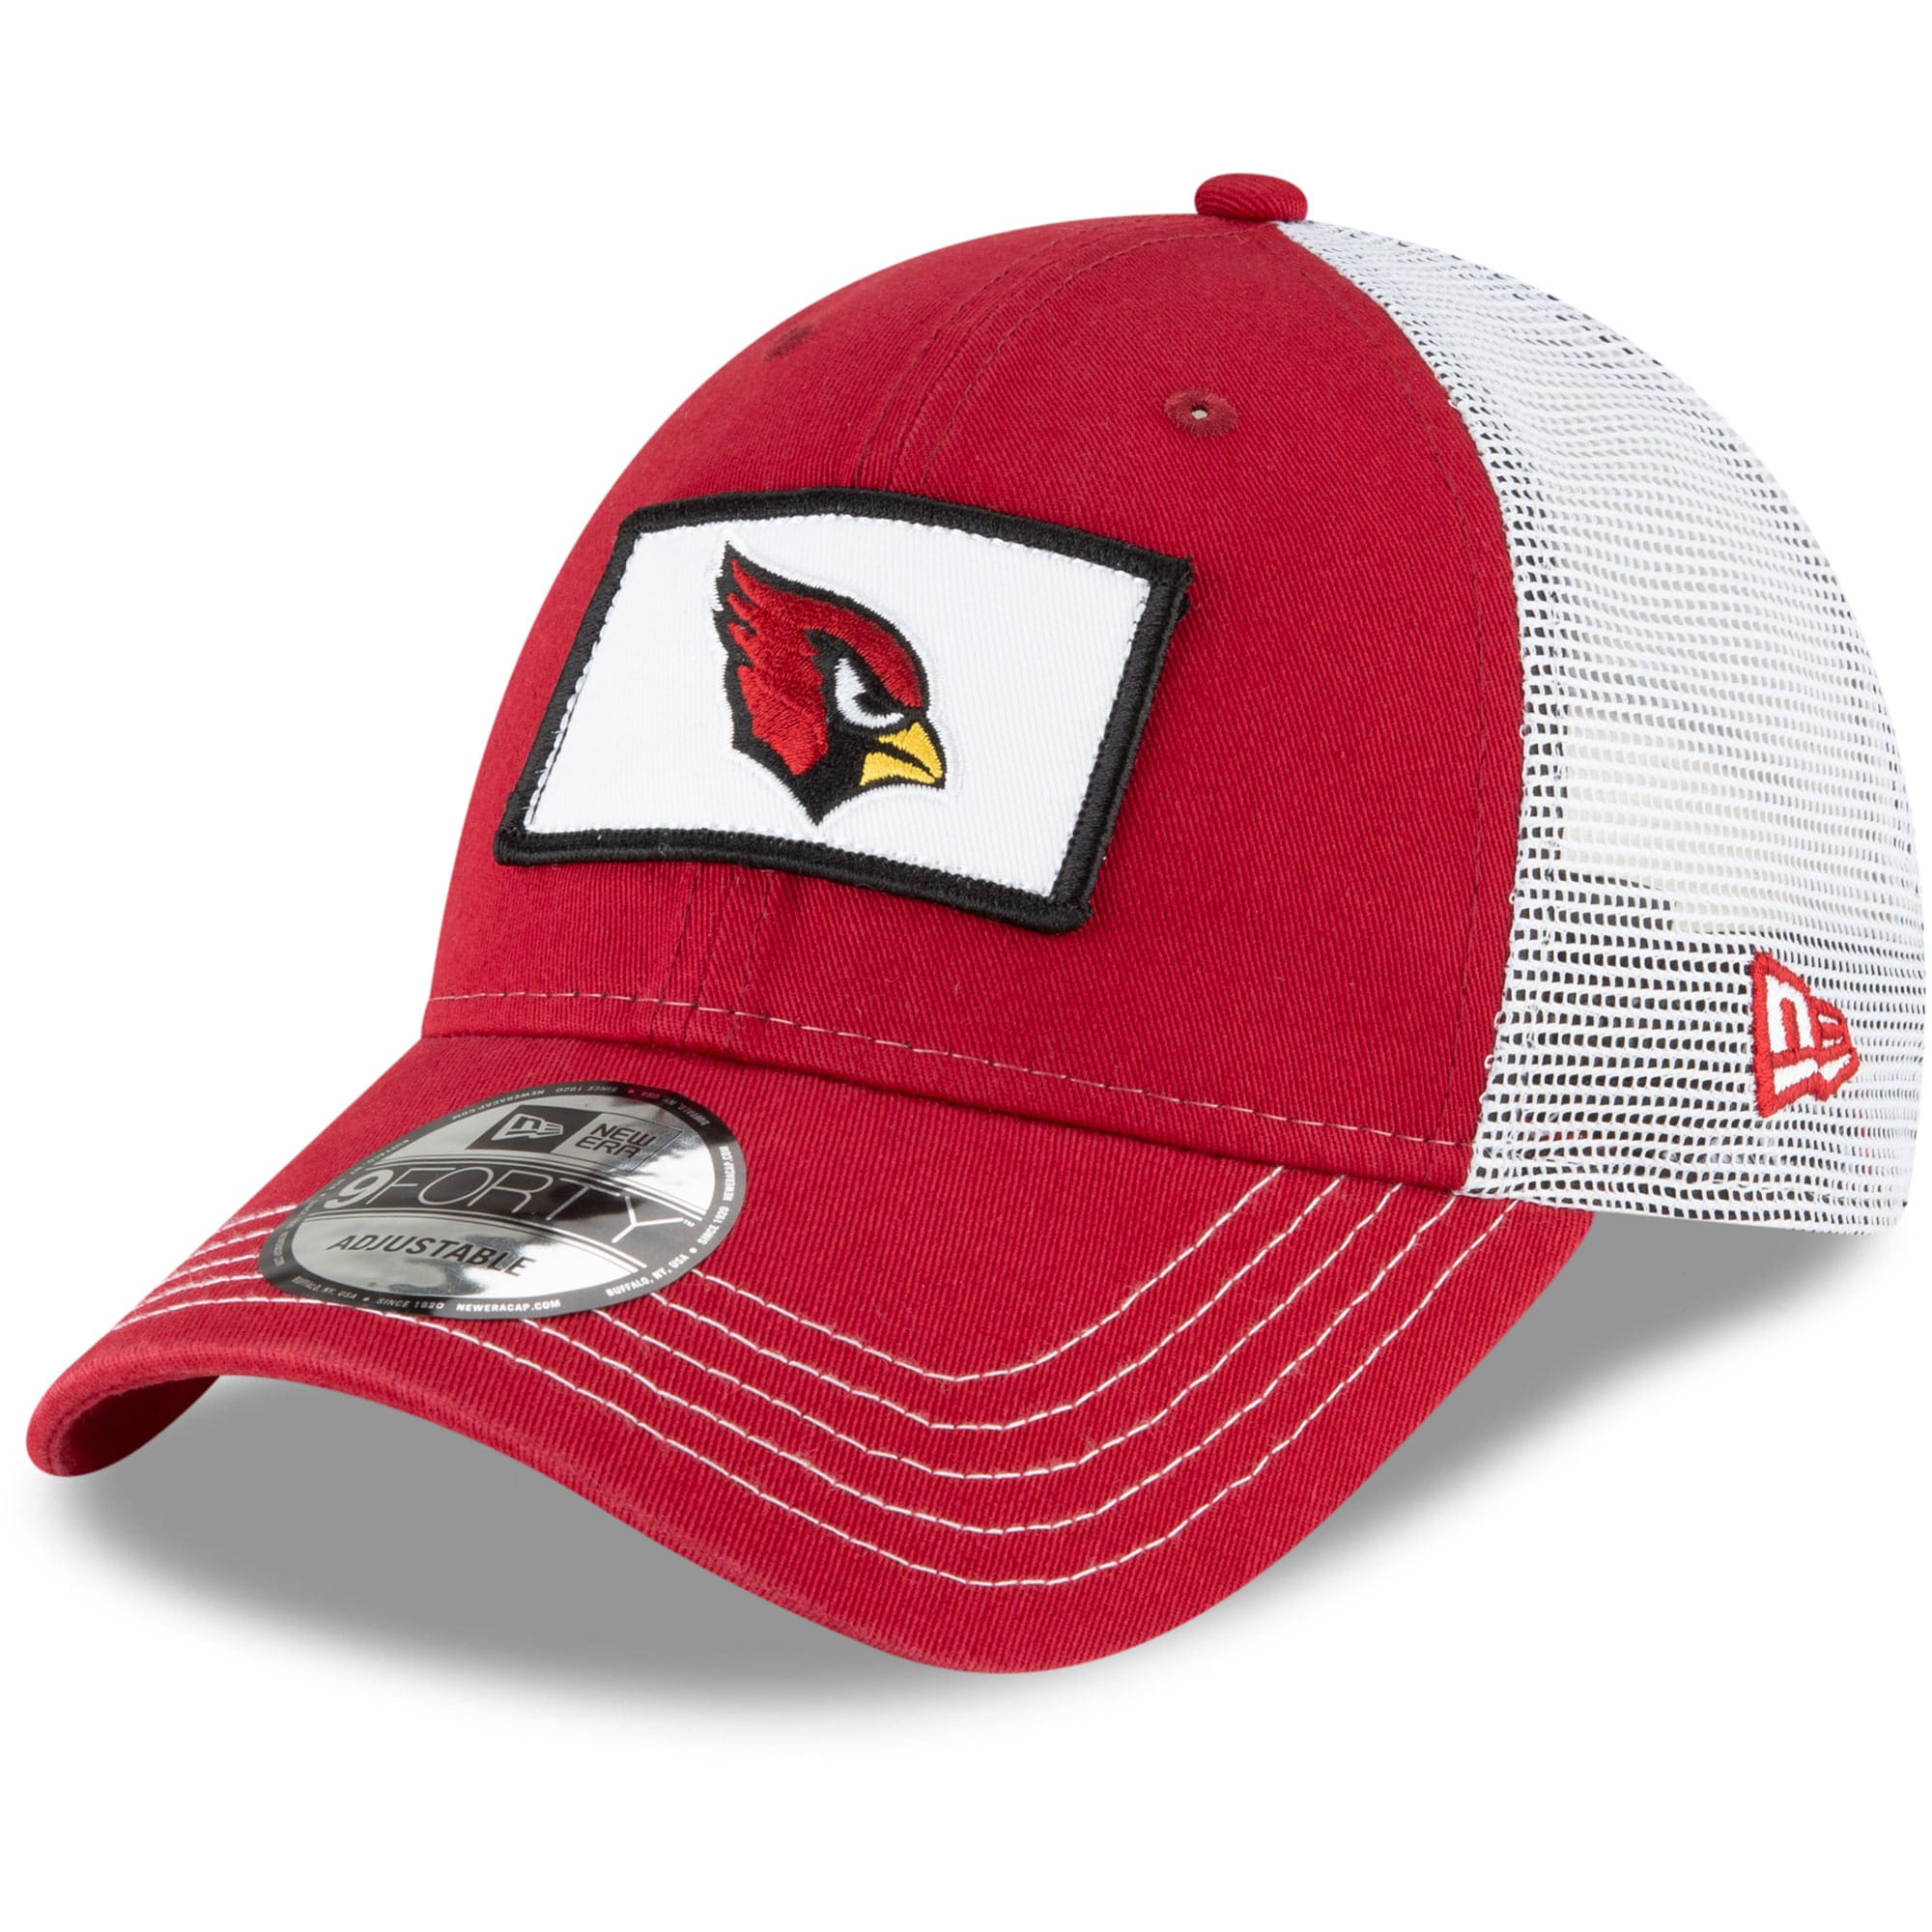 Arizona Cardinals New Era Jammer Trucker 9FORTY Snapback Hat - Cardinal